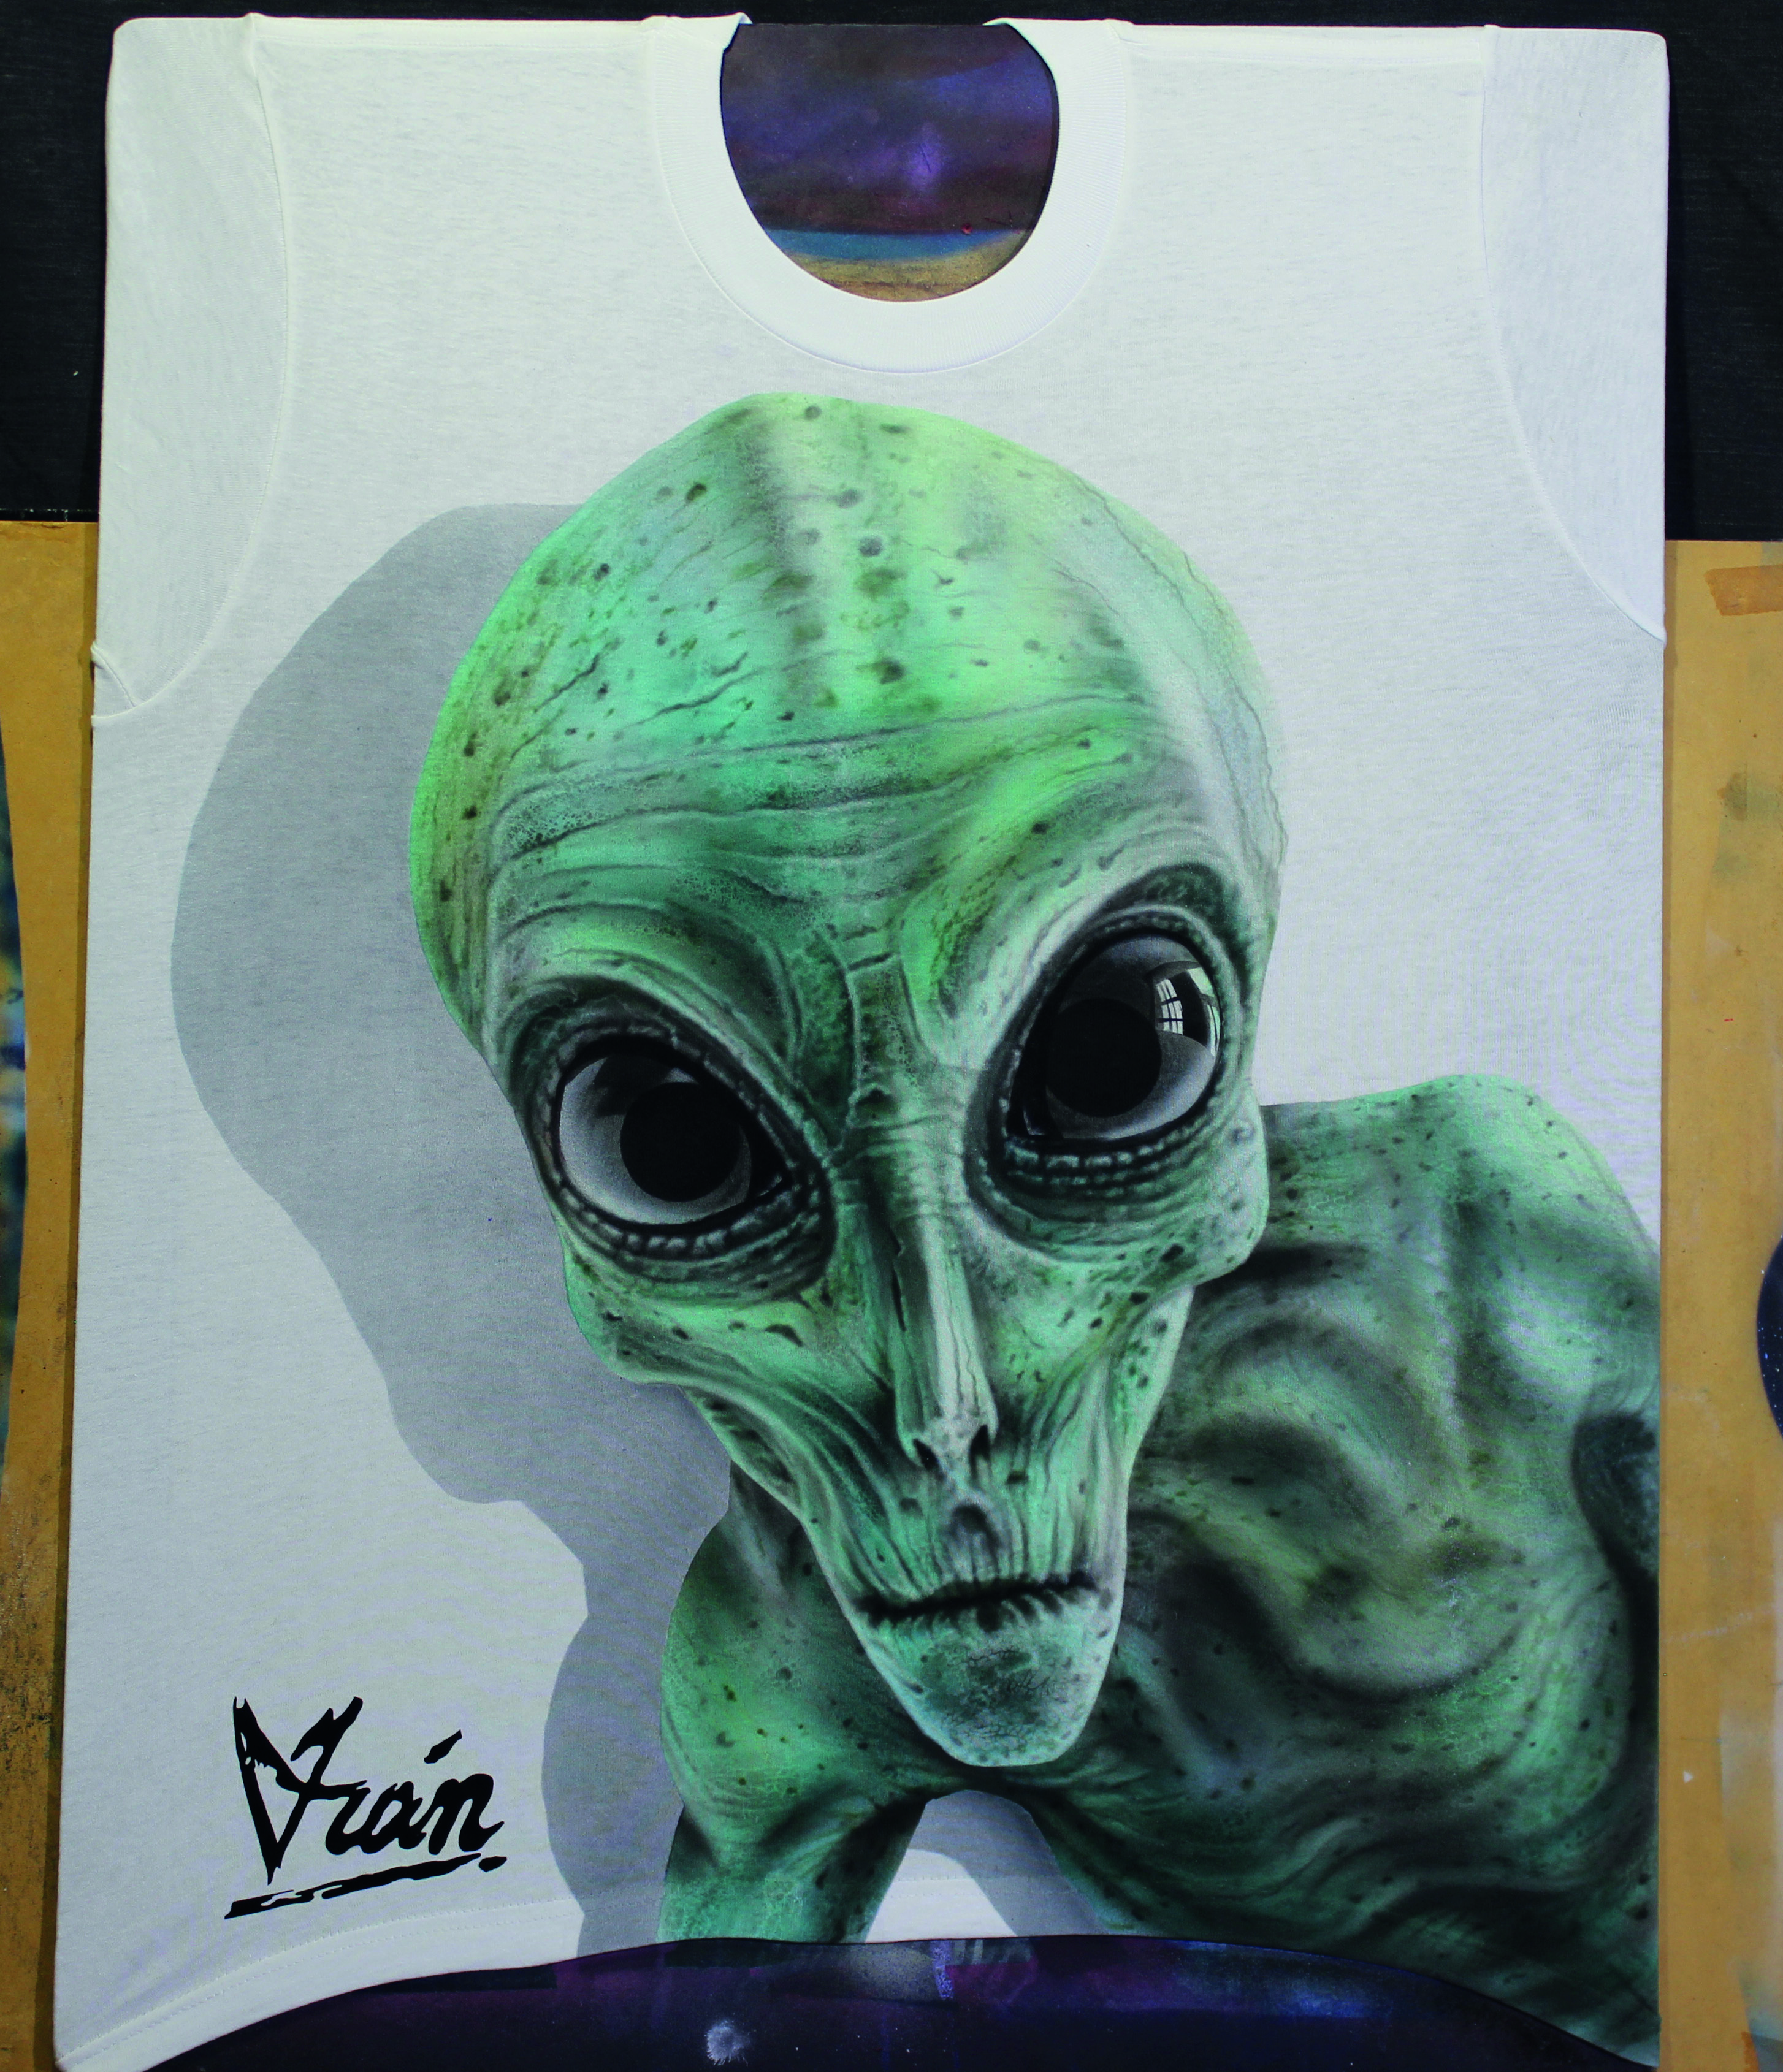 CARNAL, the Alien